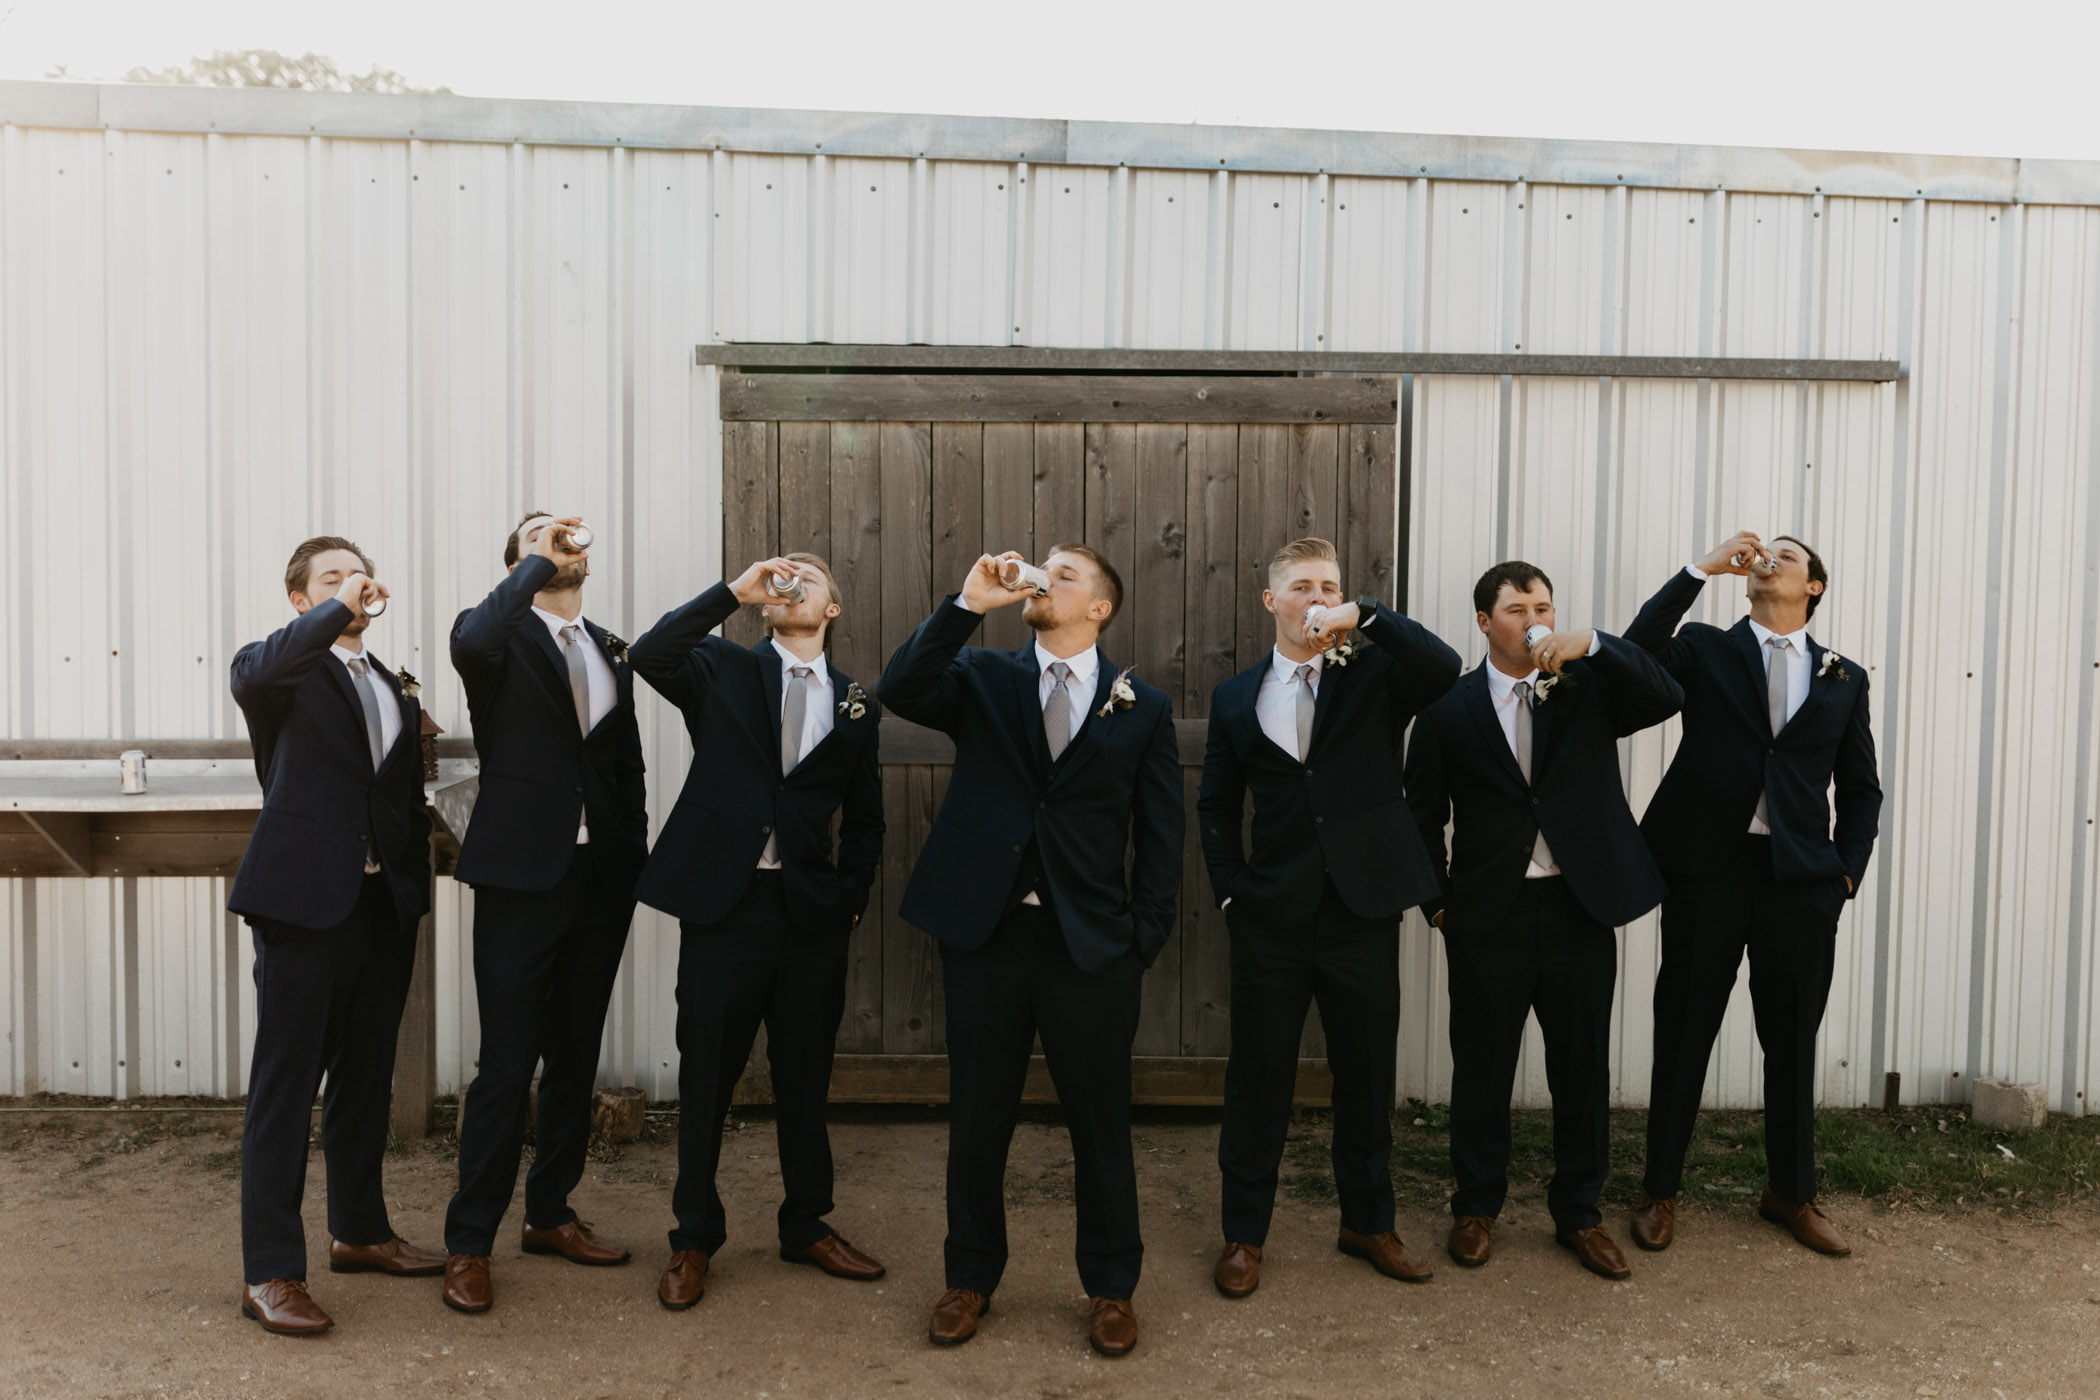 groomsmen drinking beer and celebrating before wedding ceremony starts